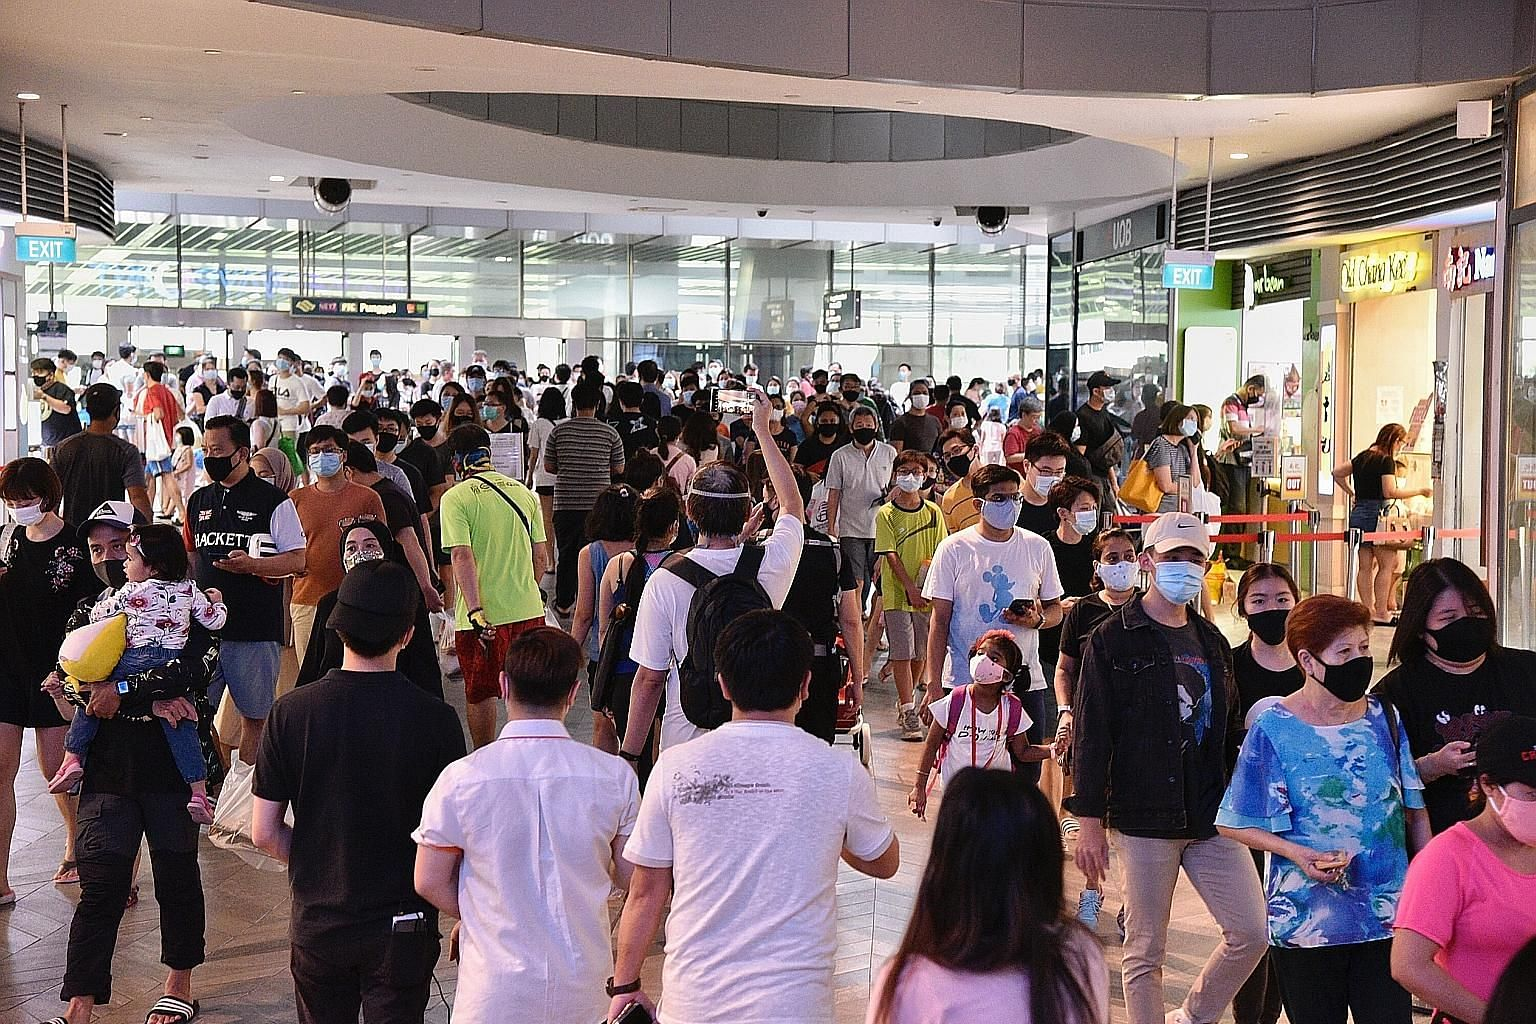 Shoppers at Waterway Point in Punggol last weekend, after Singapore moved into phase two of its reopening in the post-circuit breaker period. The Covid-19 pandemic shows no signs of slowing down across the world, with the number of cases approaching